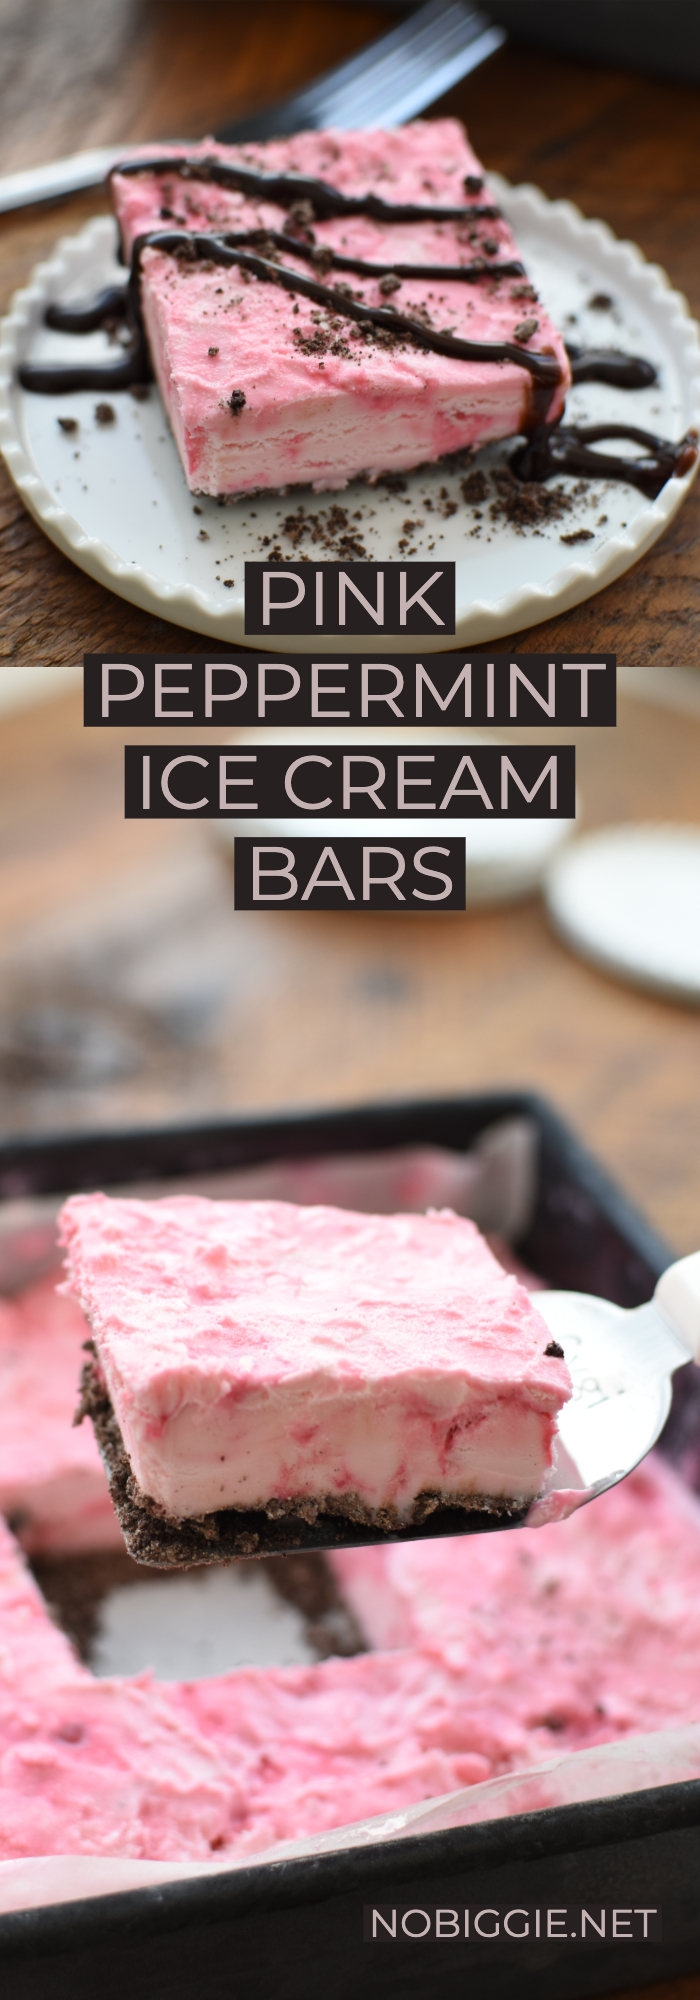 Pink peppermint ice cream bars | NoBiggie.net